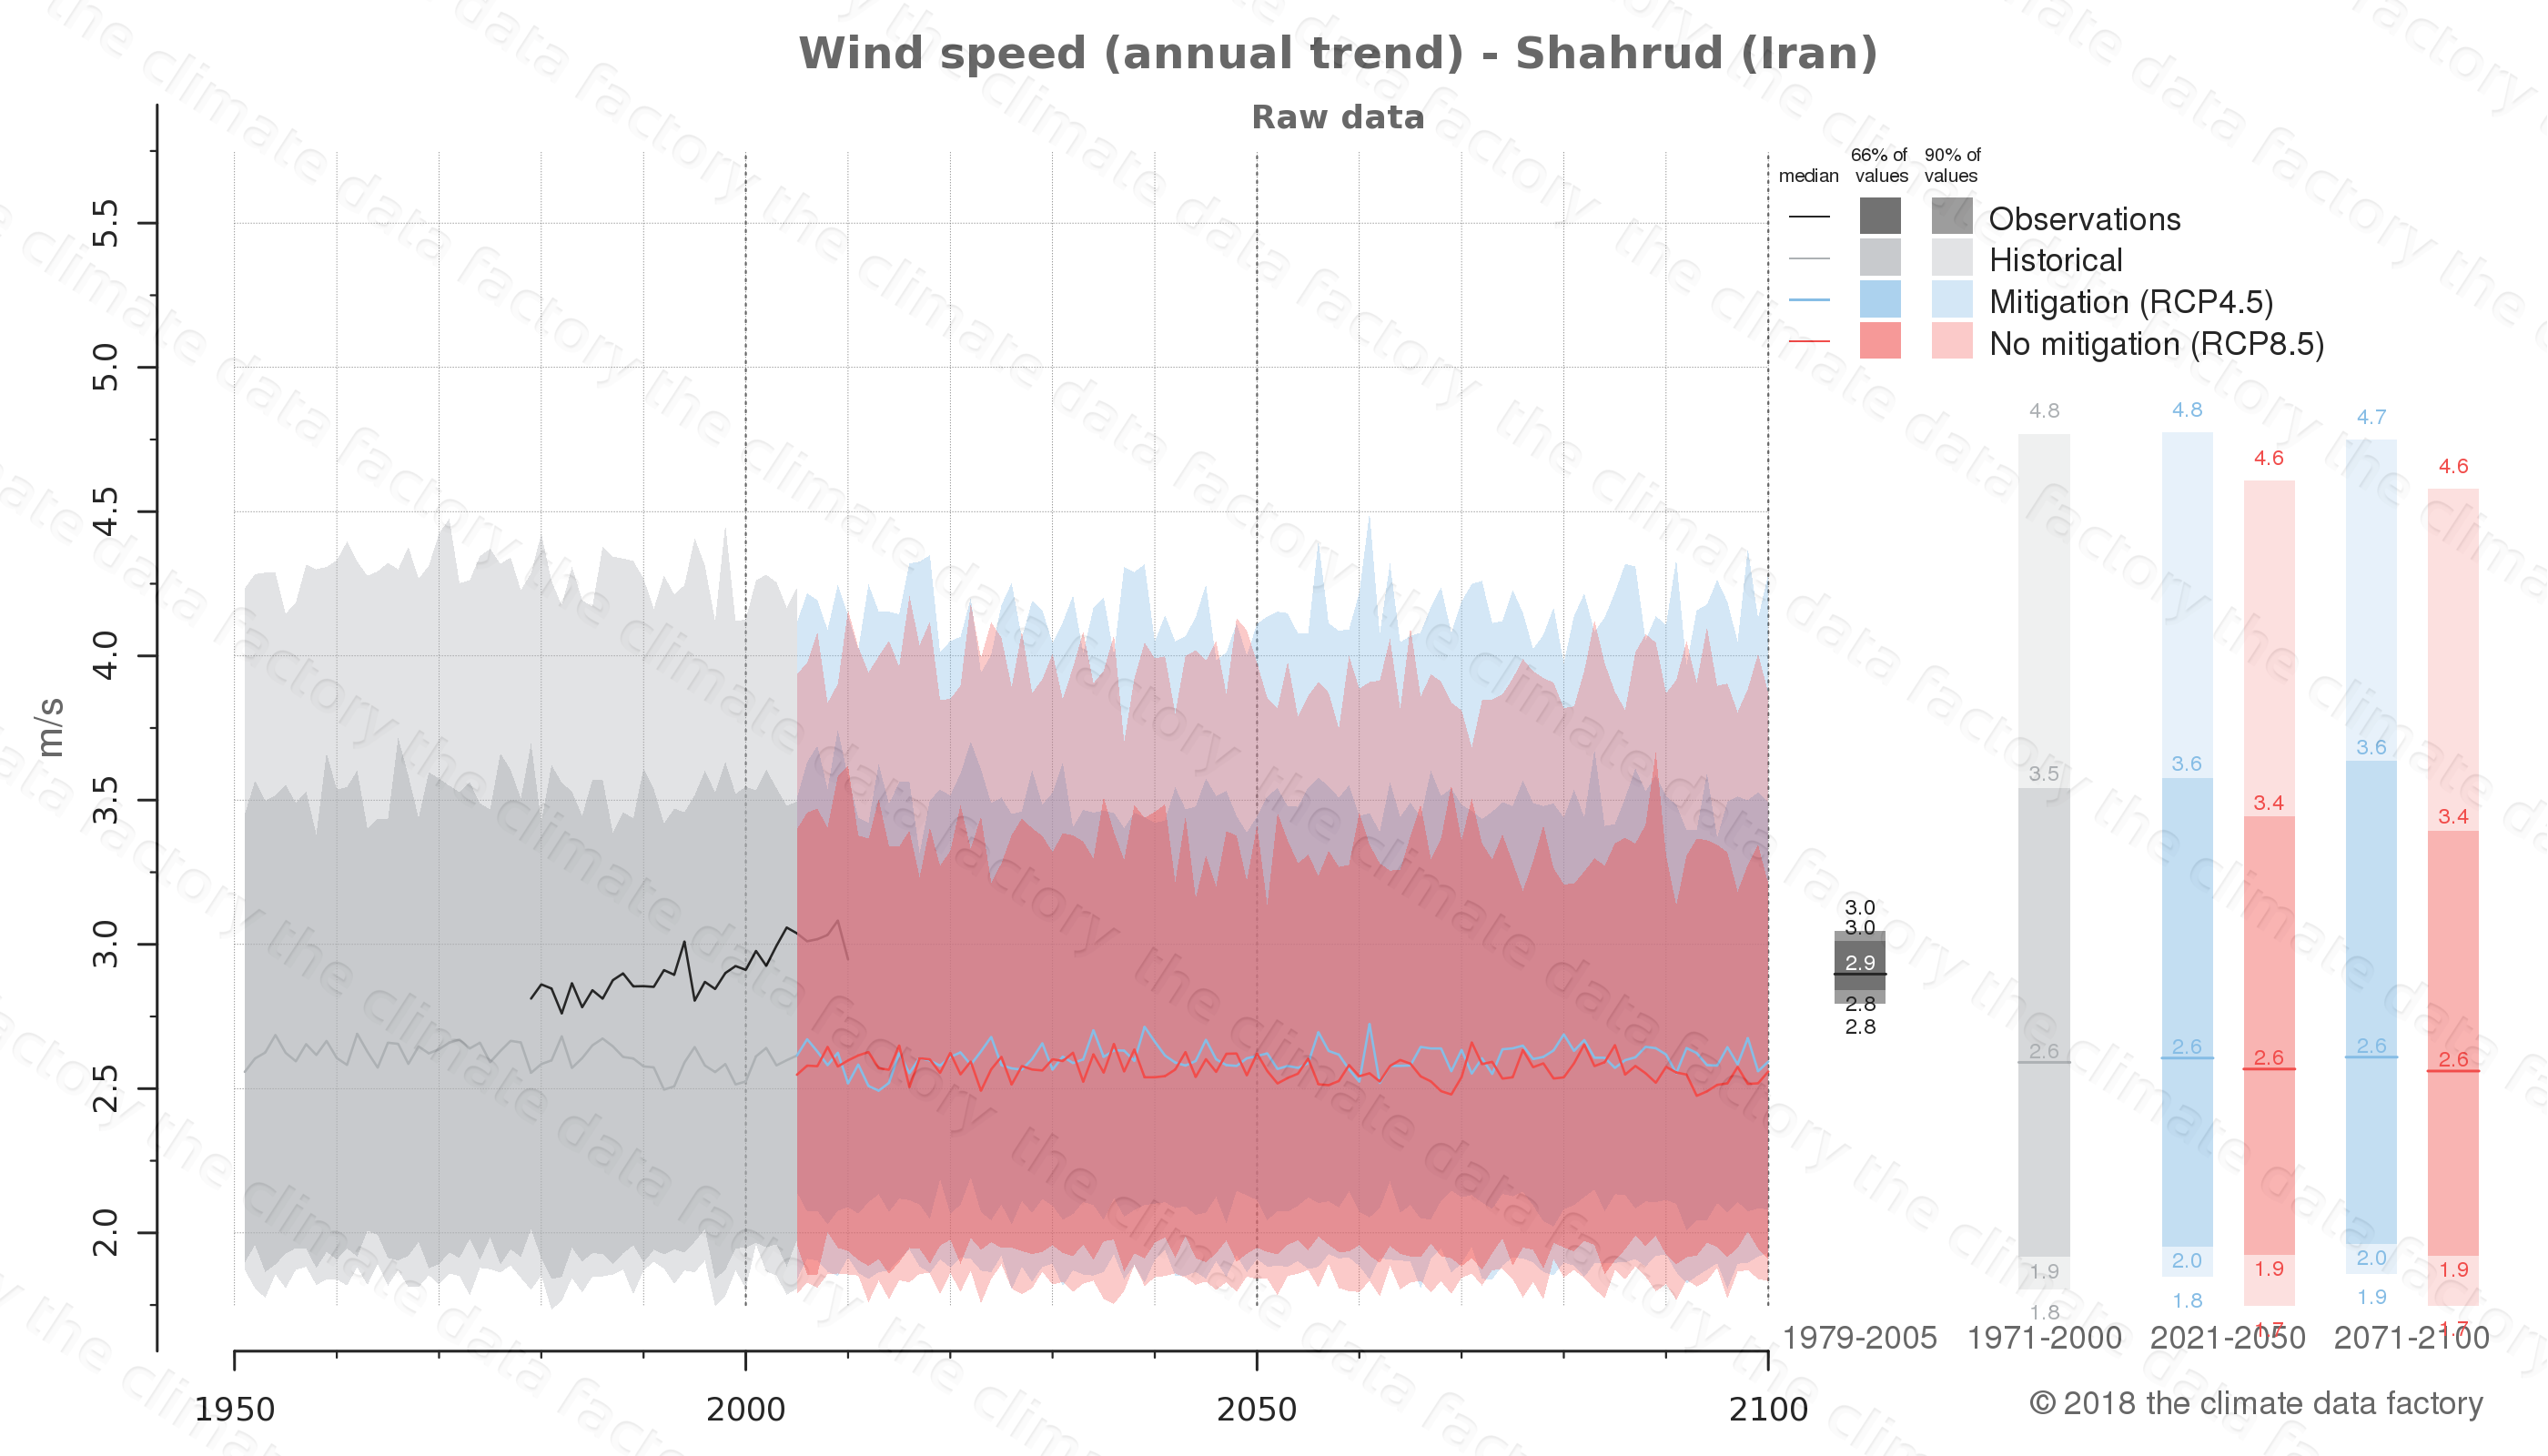 climate change data policy adaptation climate graph city data wind-speed shahrud iran